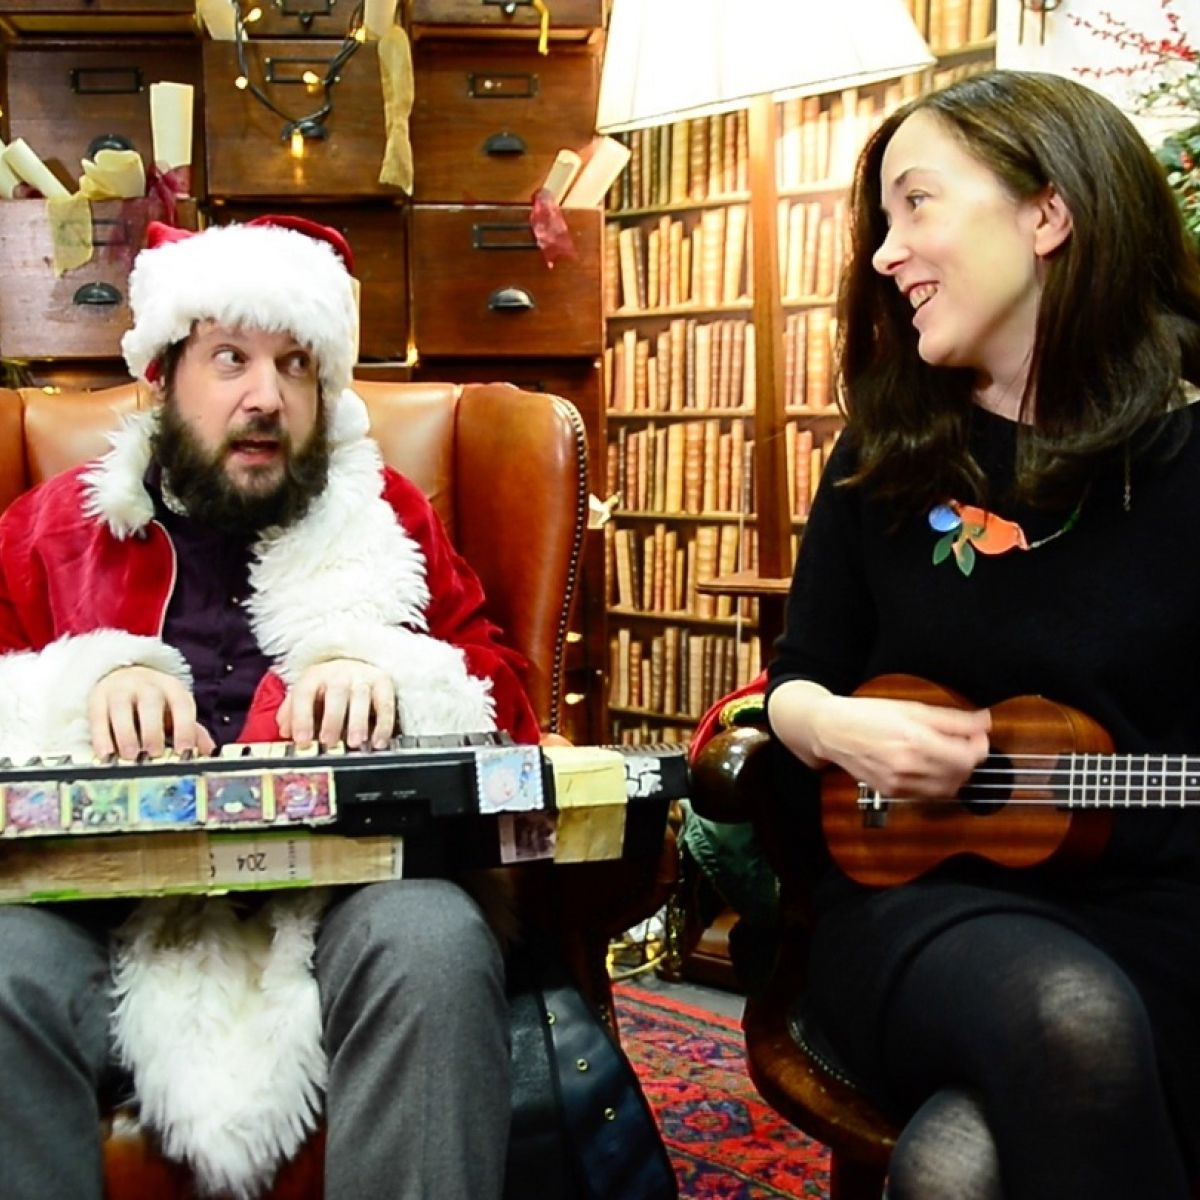 How to write a Christmas hit and get rich (fingers crossed)